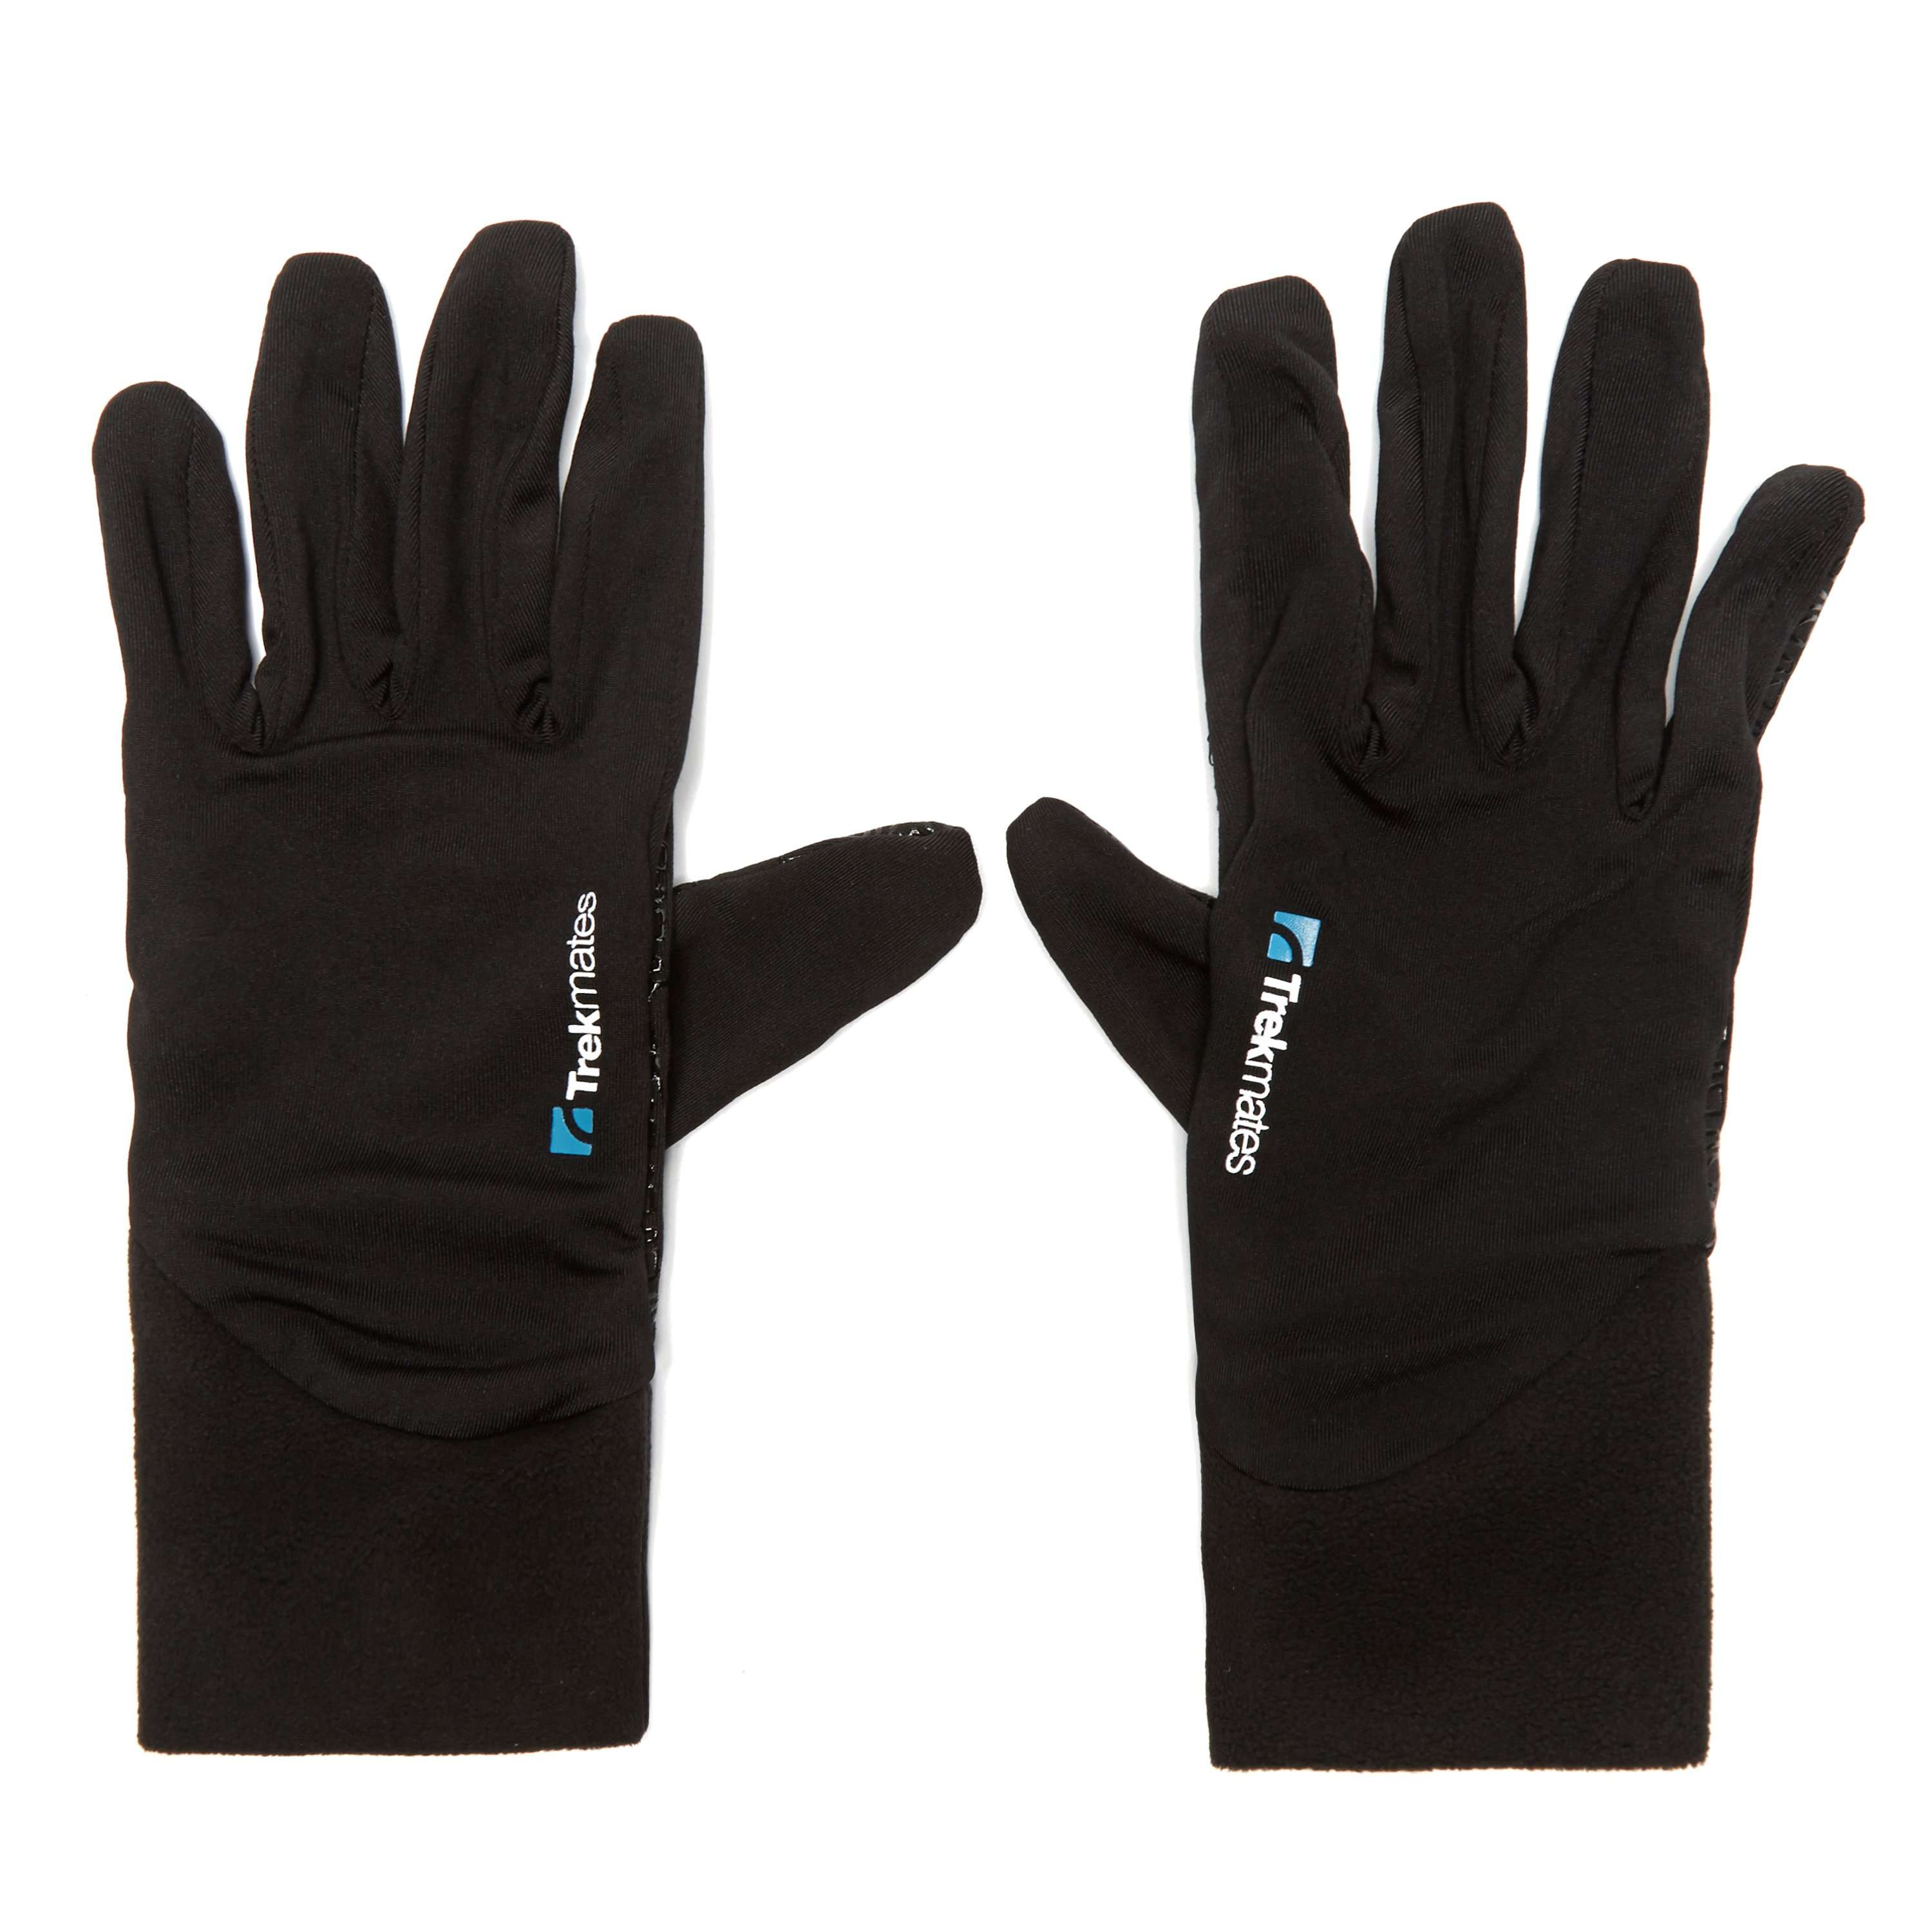 TREKMATES Men's Siloch Liner Gloves